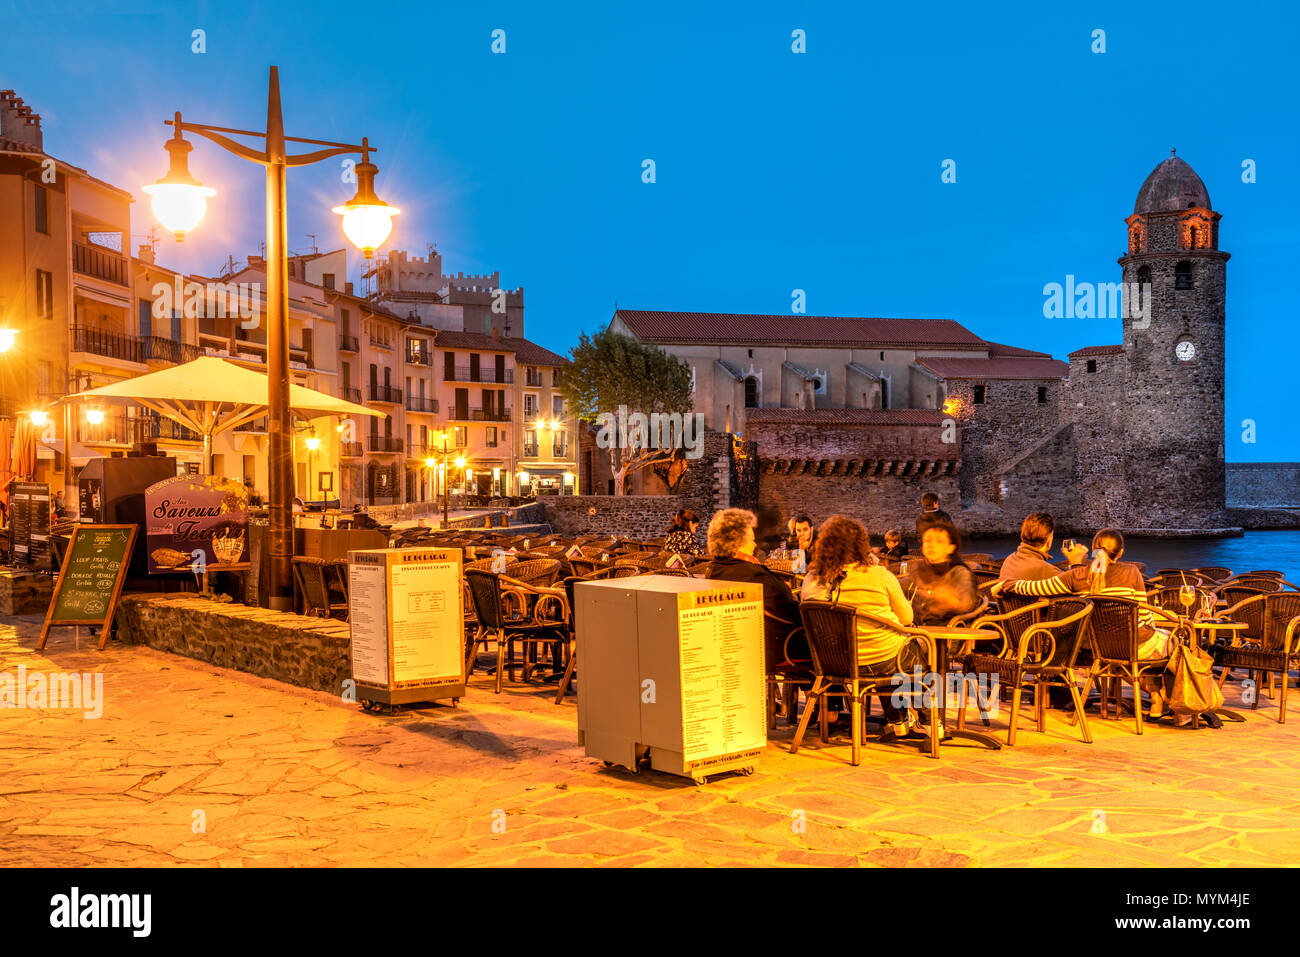 Outdoor cafe on the beach, Collioure, Pyrenees-Orientales, France - Stock Image